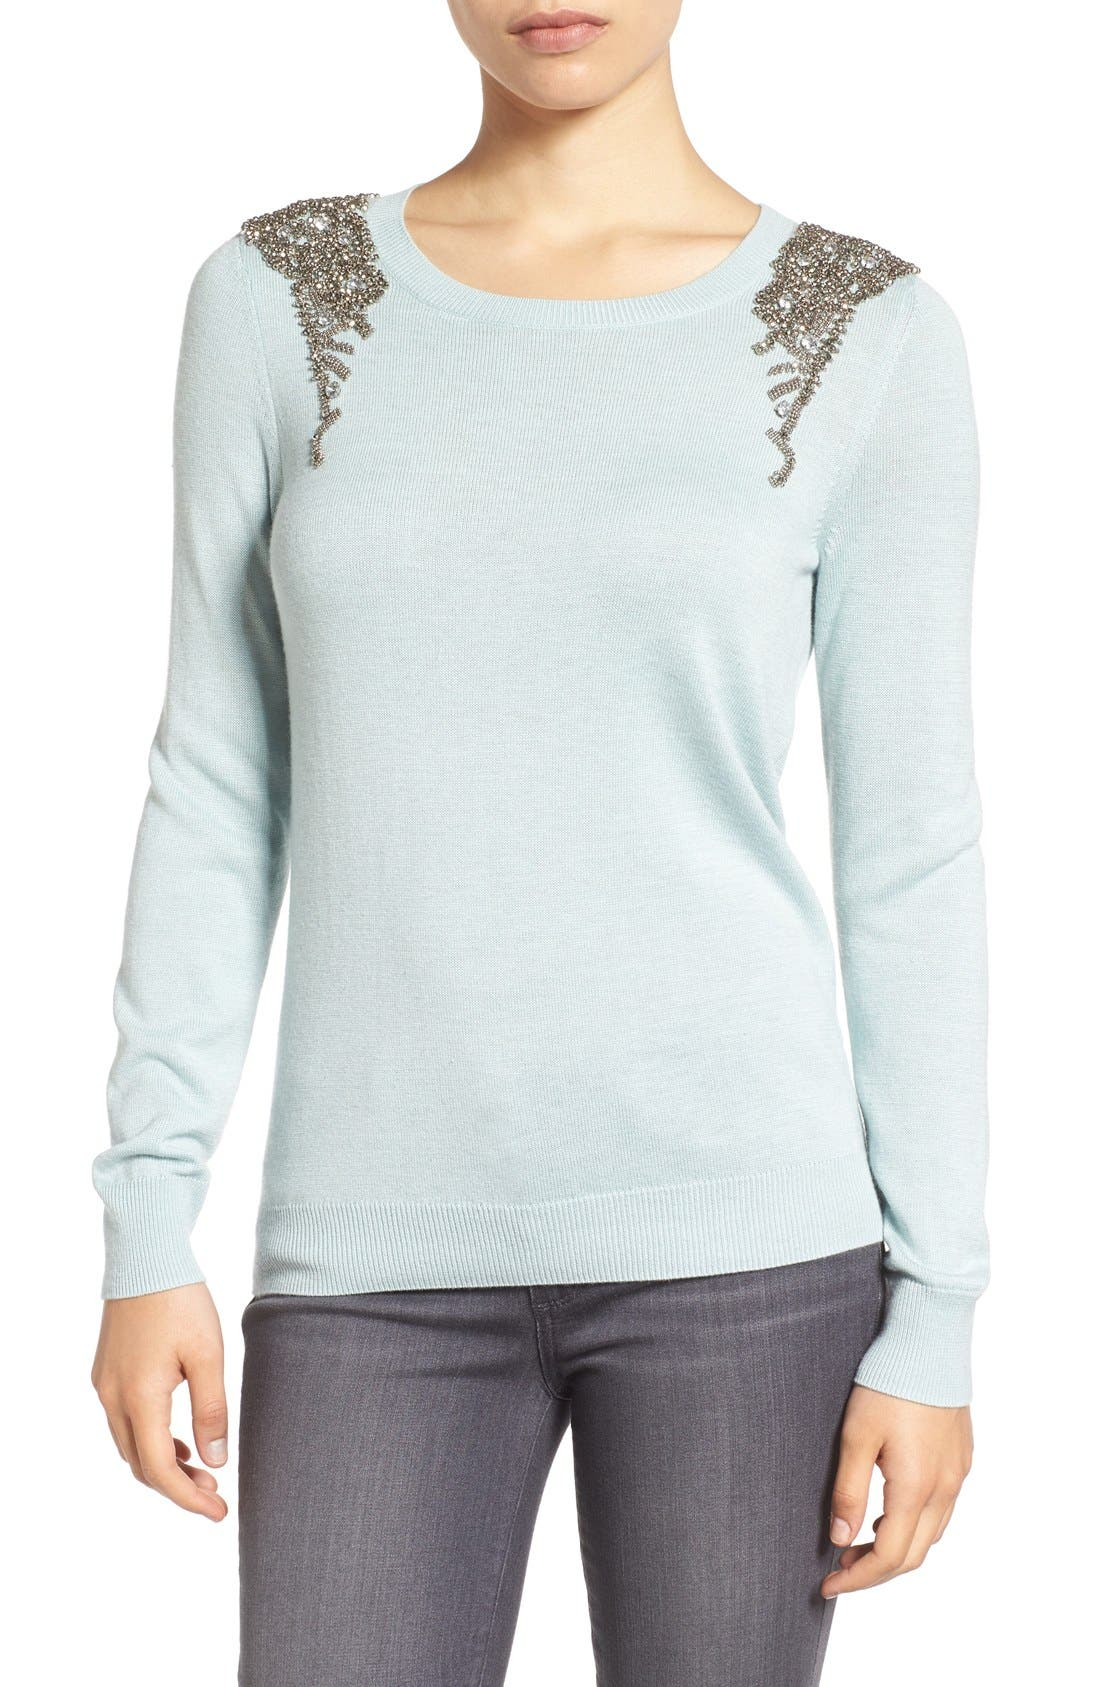 Alternate Image 1 Selected - Halogen® Embellished Shoulder Sweater (Regular & Petite)